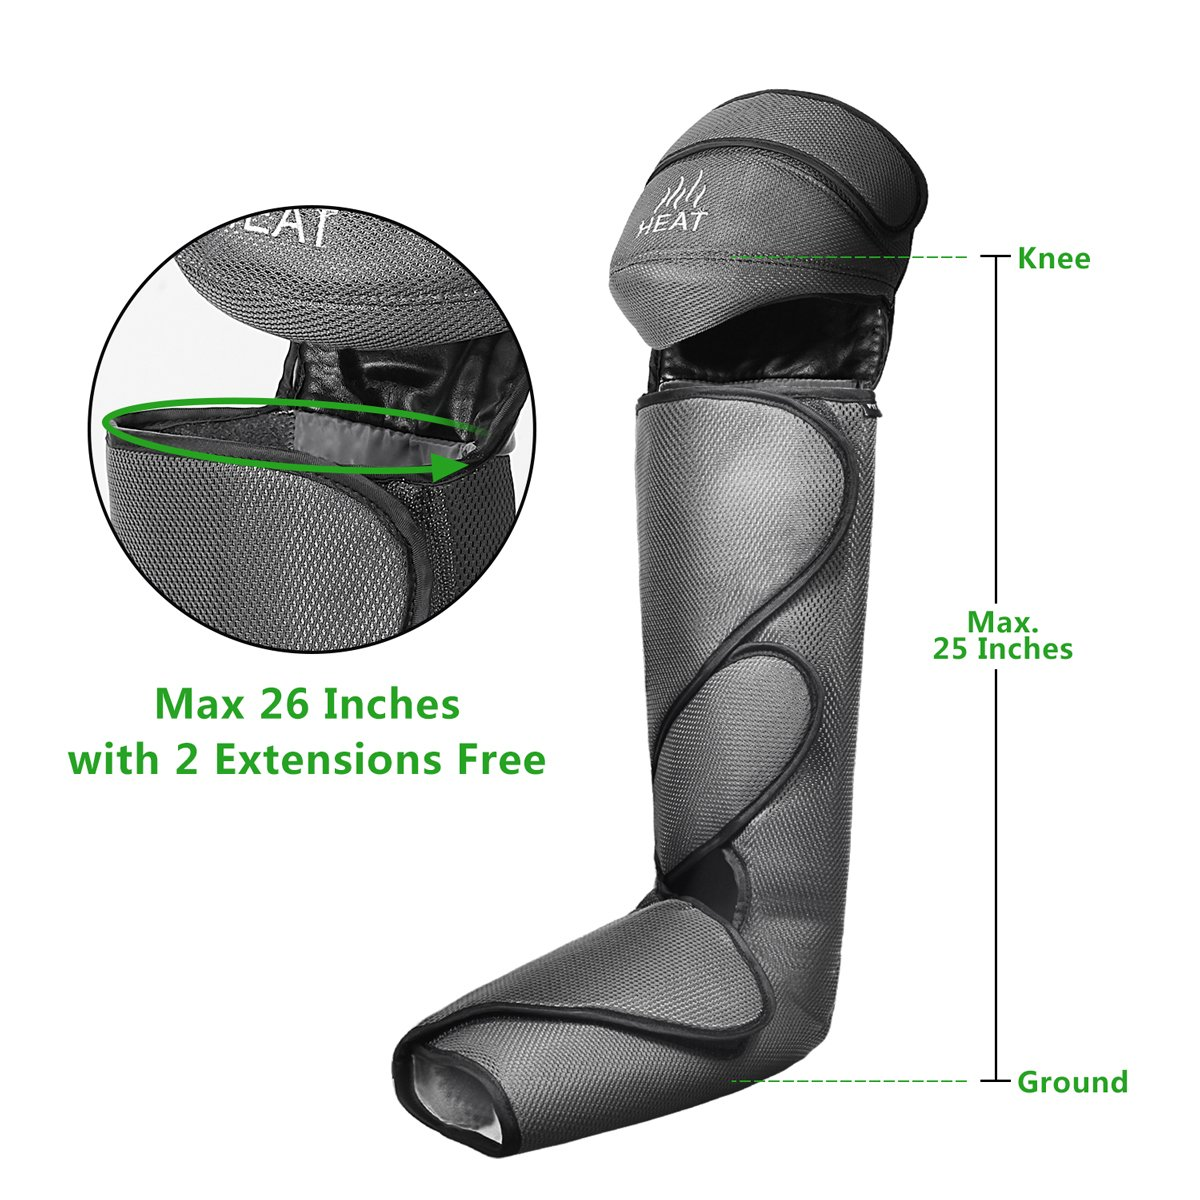 FIT KING Leg & Foot Air Massager and Knee Warmer for Foot Calf and Knee Circulation Massage with Size Extensions and 3 Modes 3 Intensities by FIT KING (Image #6)